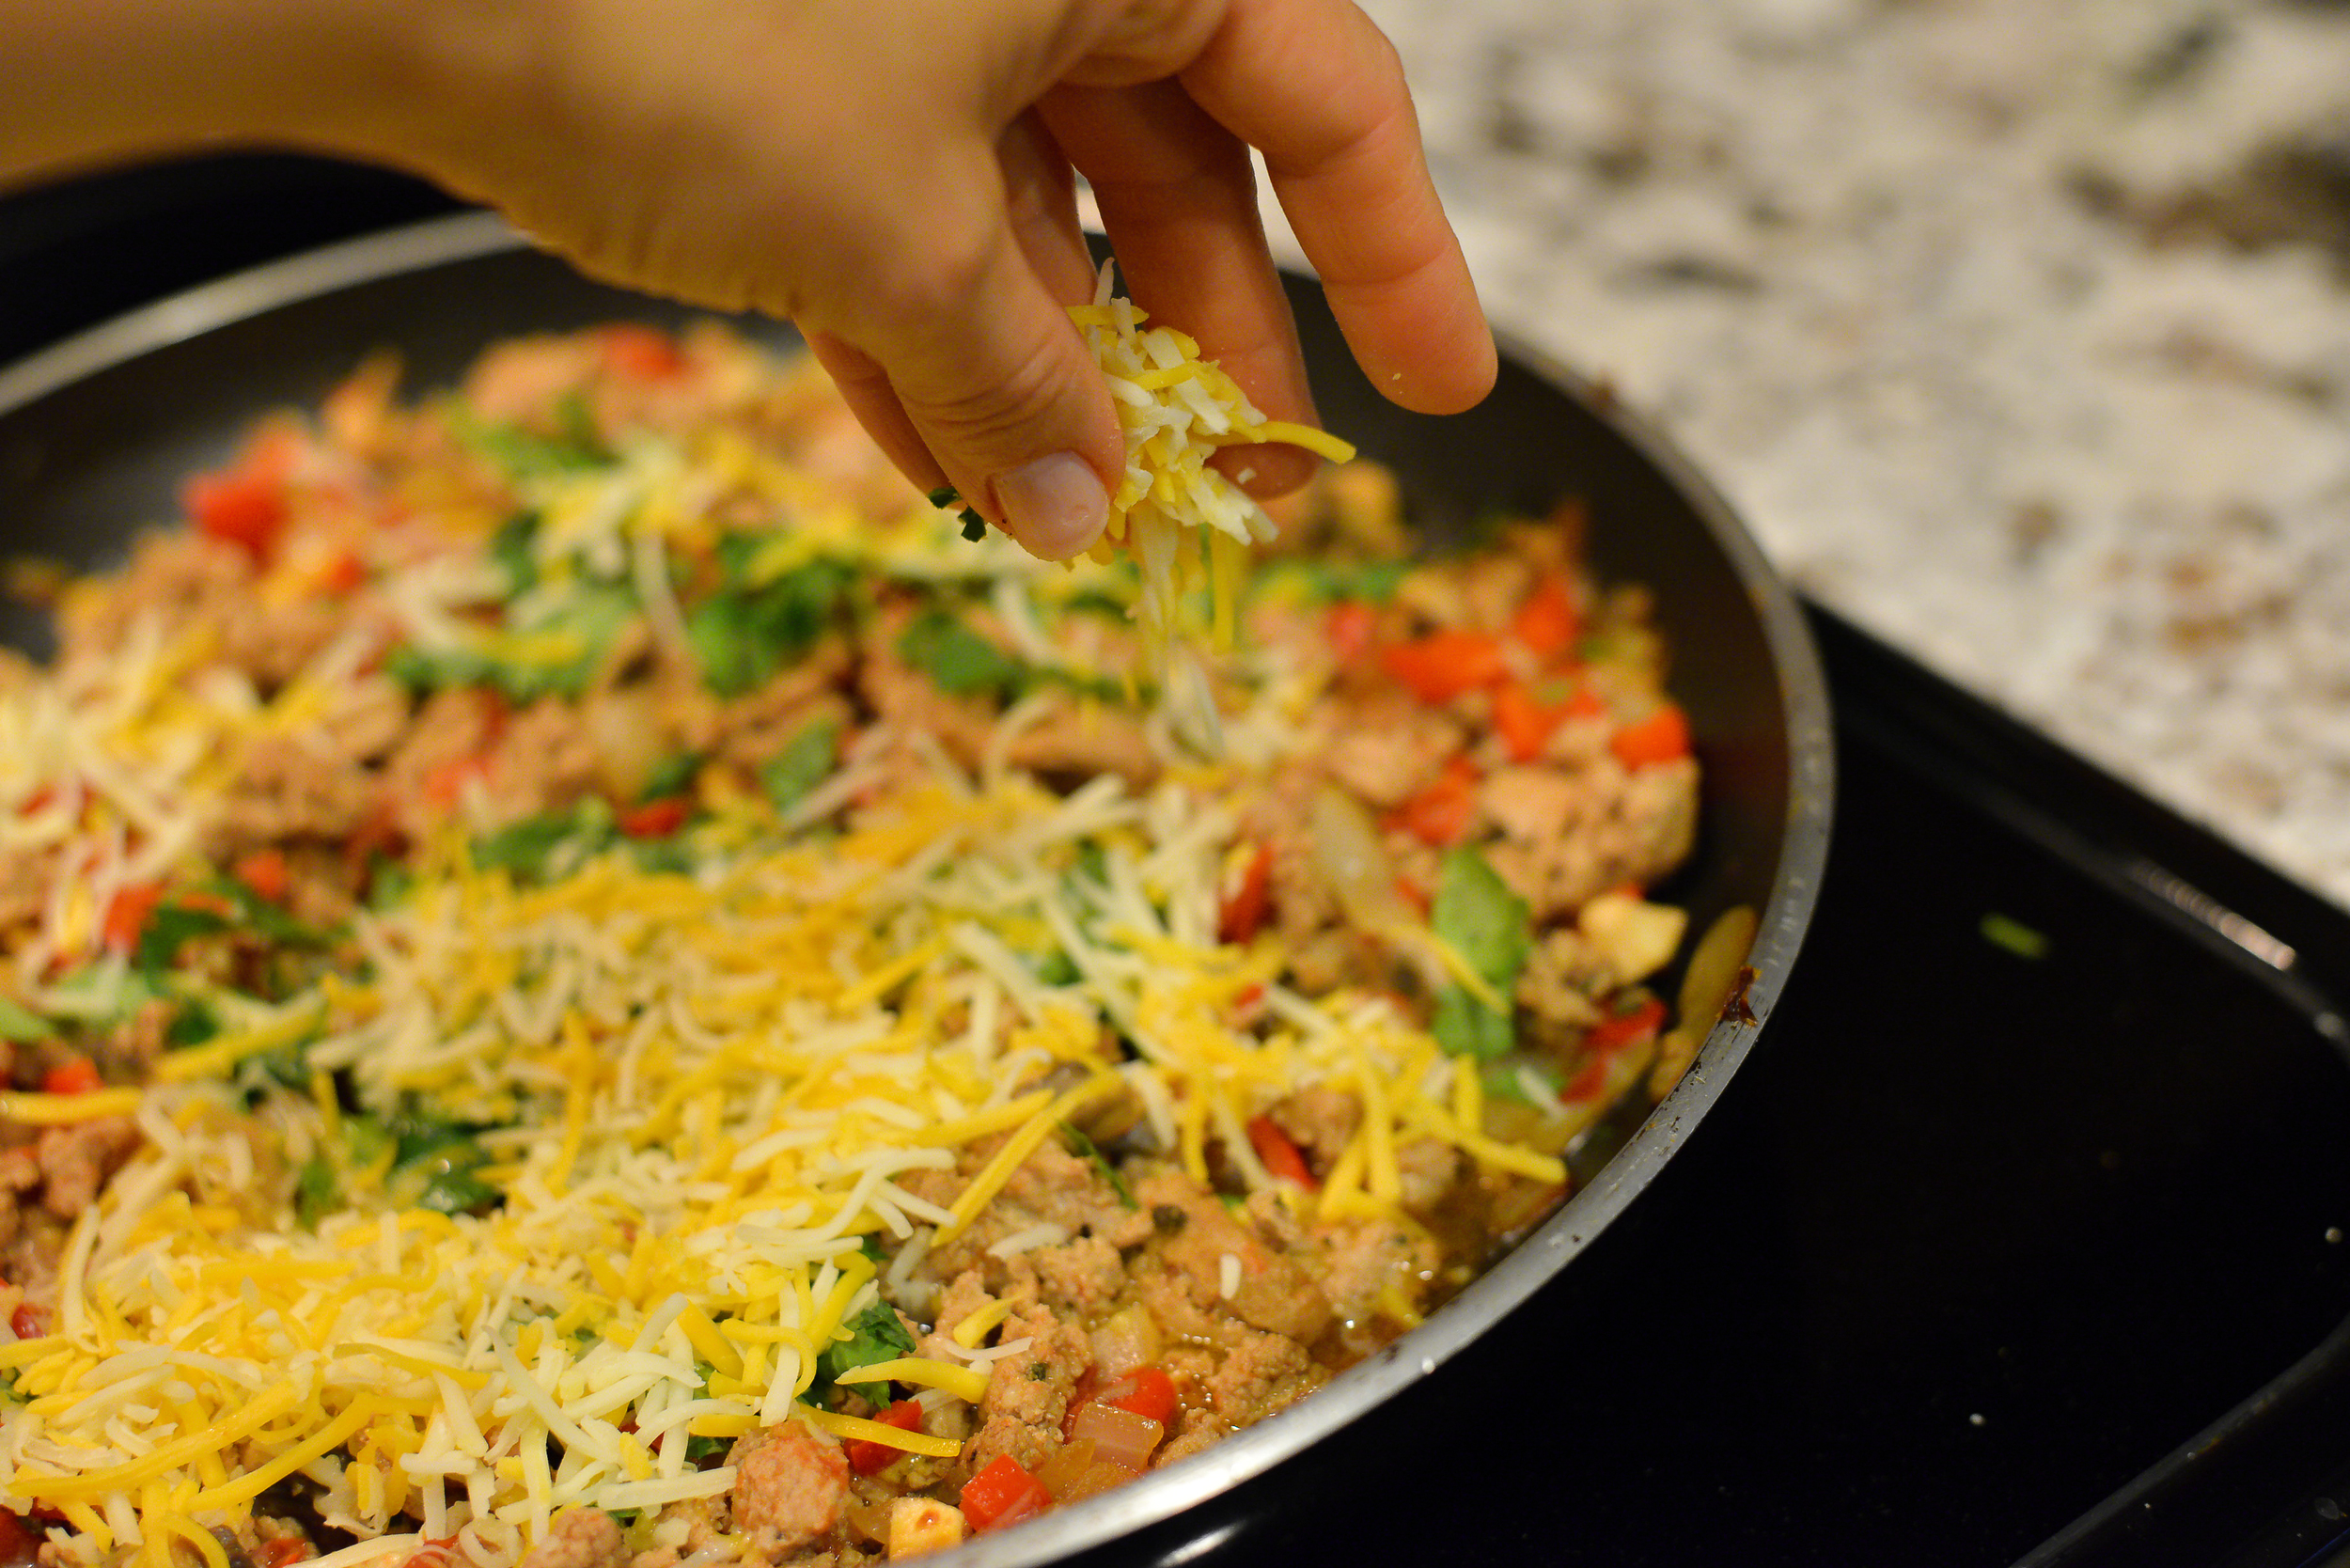 Top this lean meat and vegetable mix with your favorite cheese. I use a shredded Mexican mix. Going with part-skim varieties will help save you some calories.